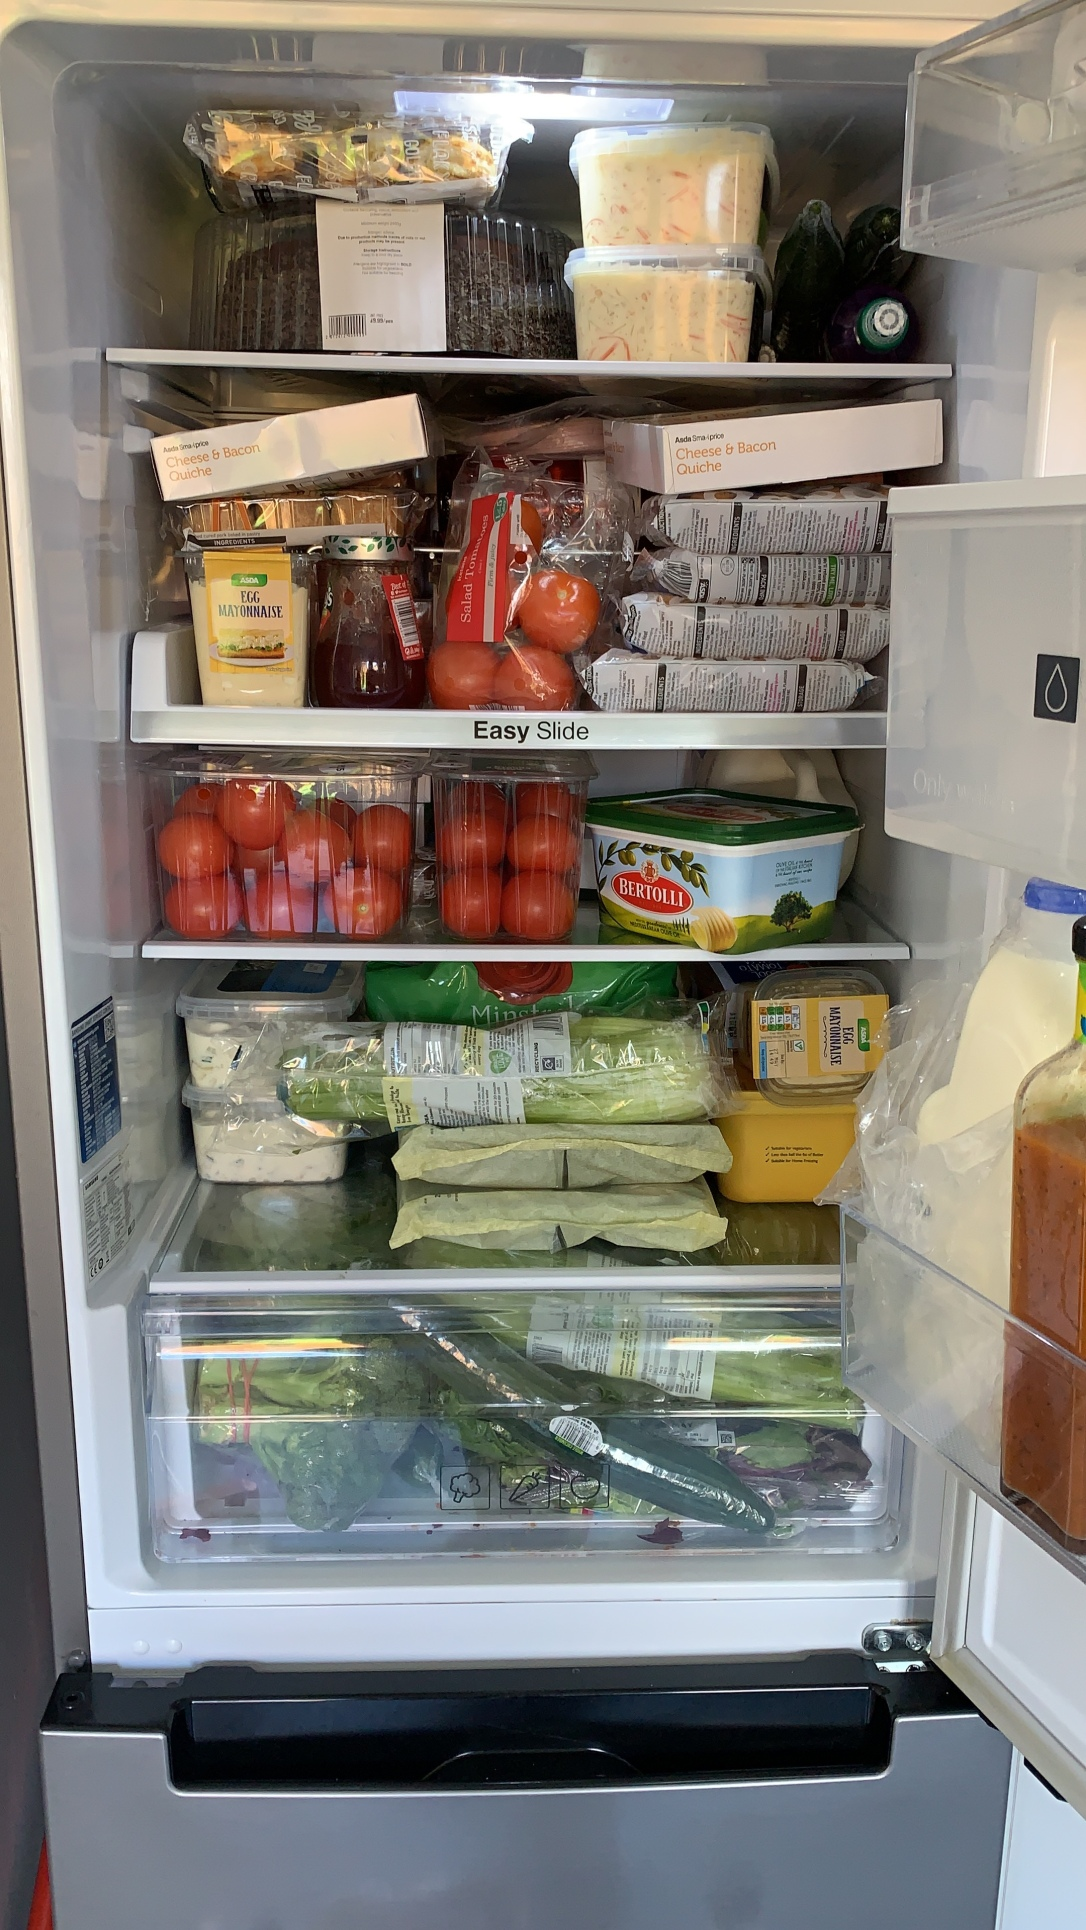 Extremely full fridge of food for the party